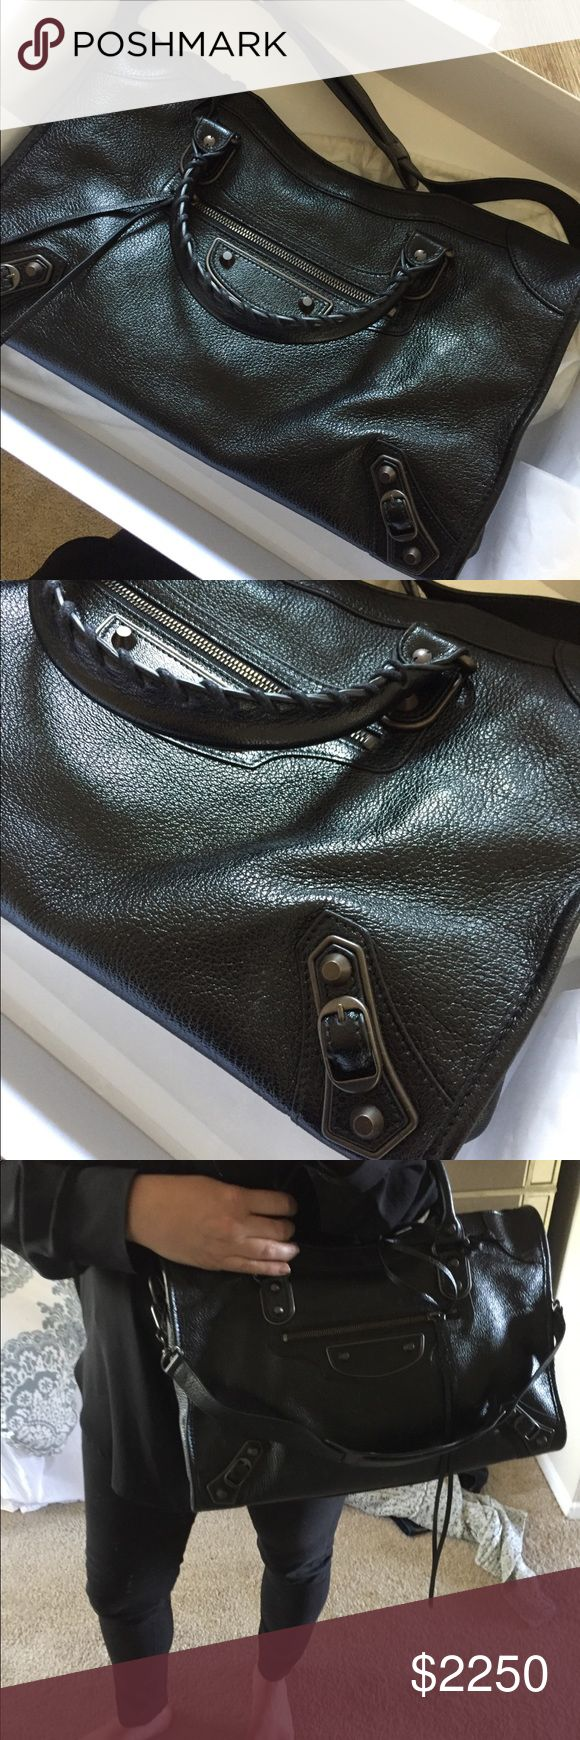 Balenciaga classic metallic edge city Baleneciaga from 2017. Only used a handful of times, bought it in September from the South Coast Plaza store in Orange County. Medium size Goat leather (not shiny) Brass metal hardware Balenciaga Bags Shoulder Bags